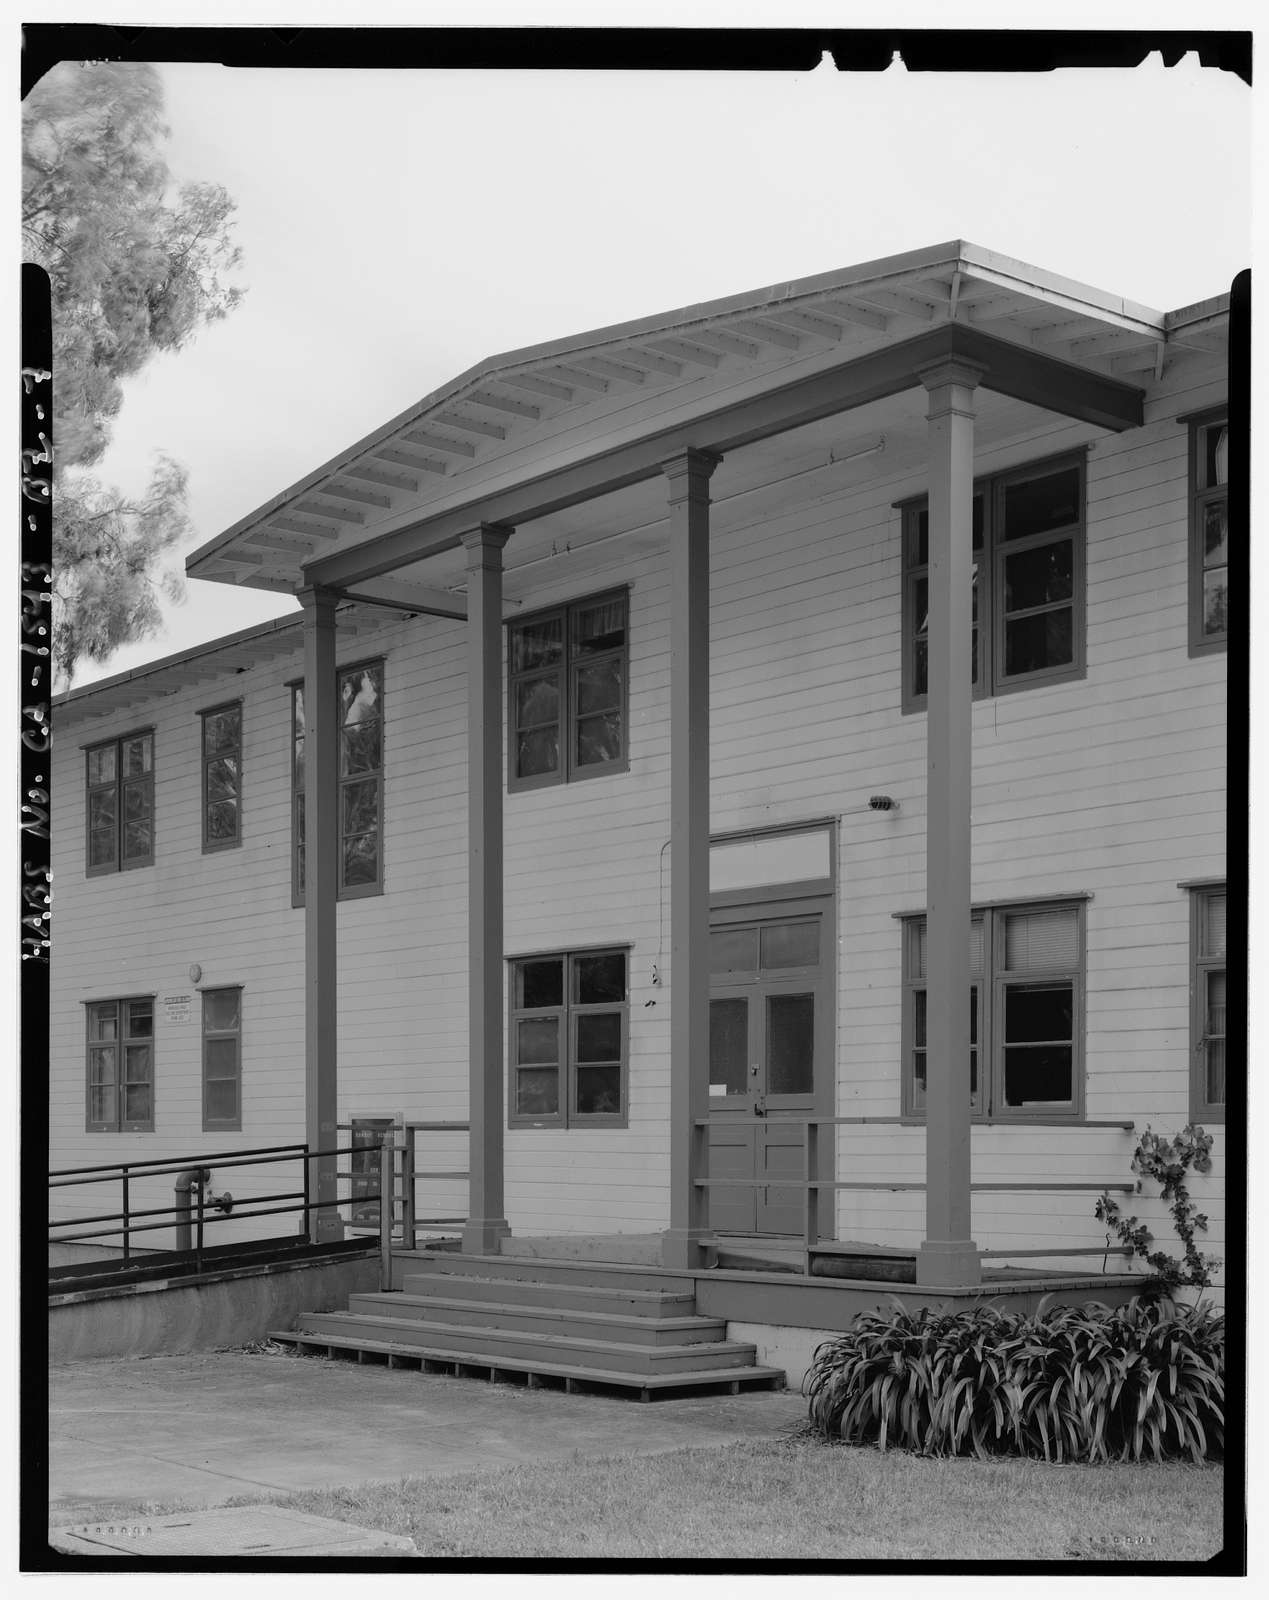 Mare Island Naval Shipyard, WAVES Officers Quarters, Cedar Avenue, west side between Tisdale Avenue & Eighth Street, Vallejo, Solano County, CA